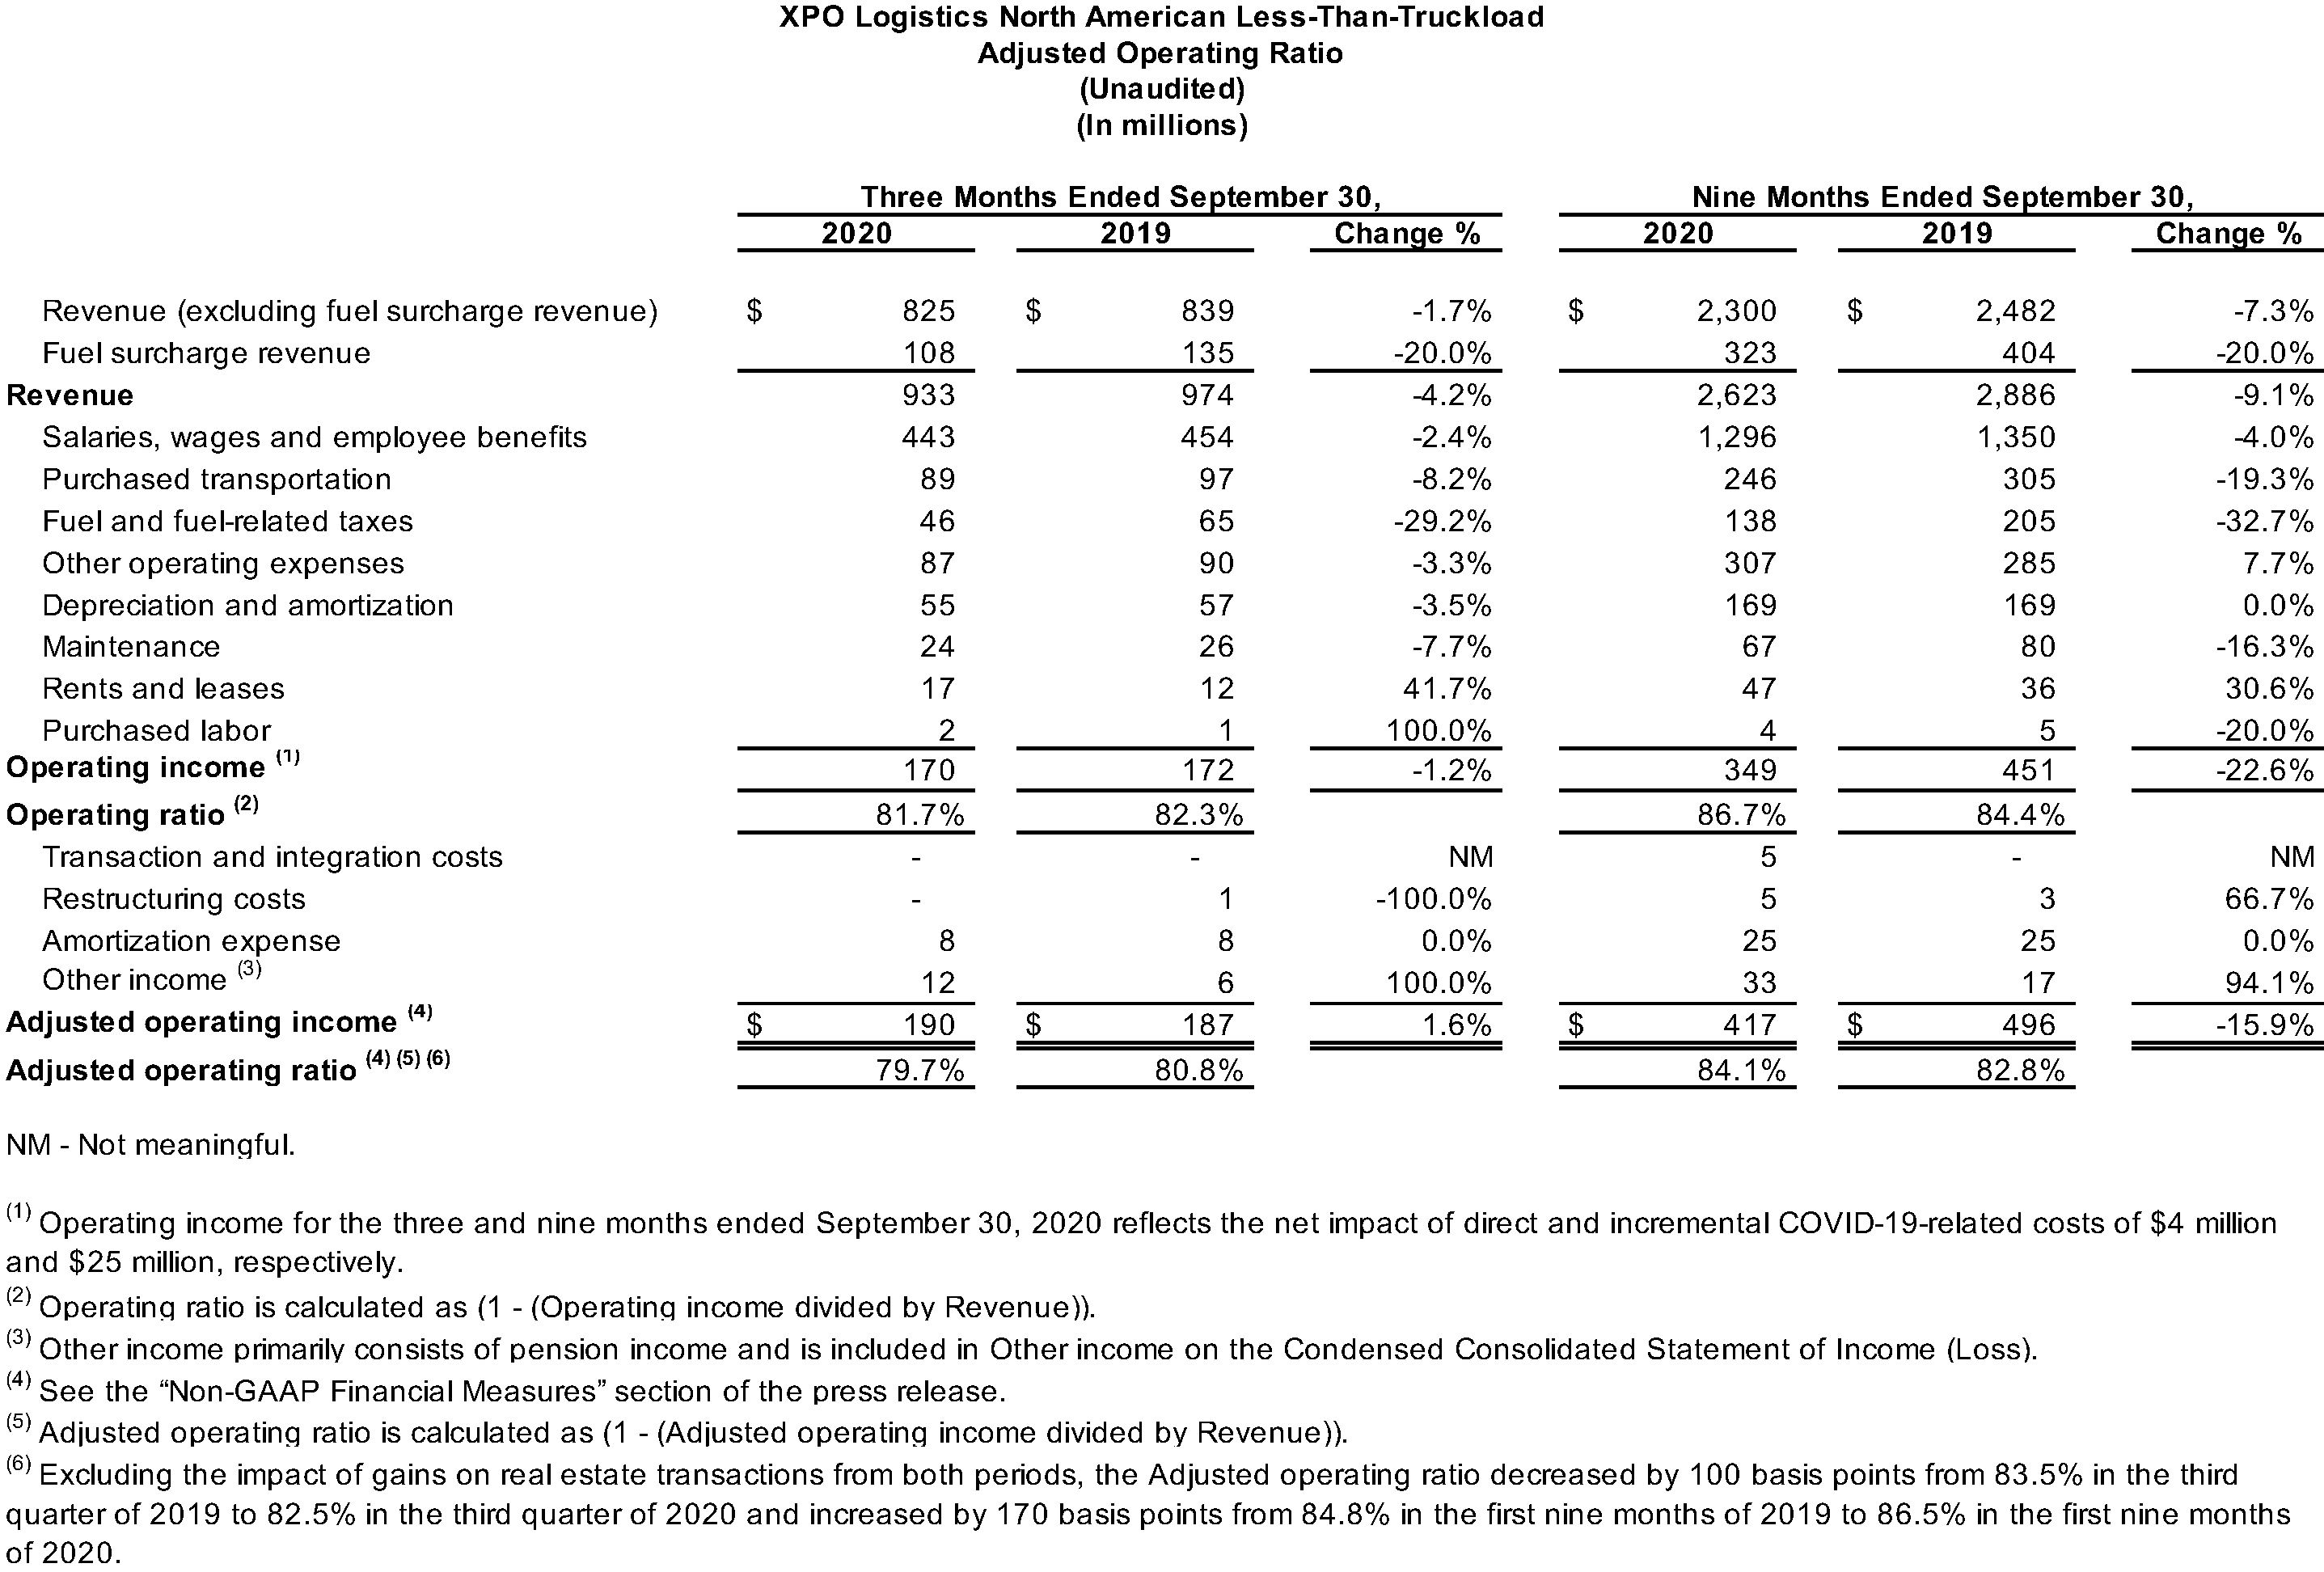 North American LTL Adjusted Operating Ratio